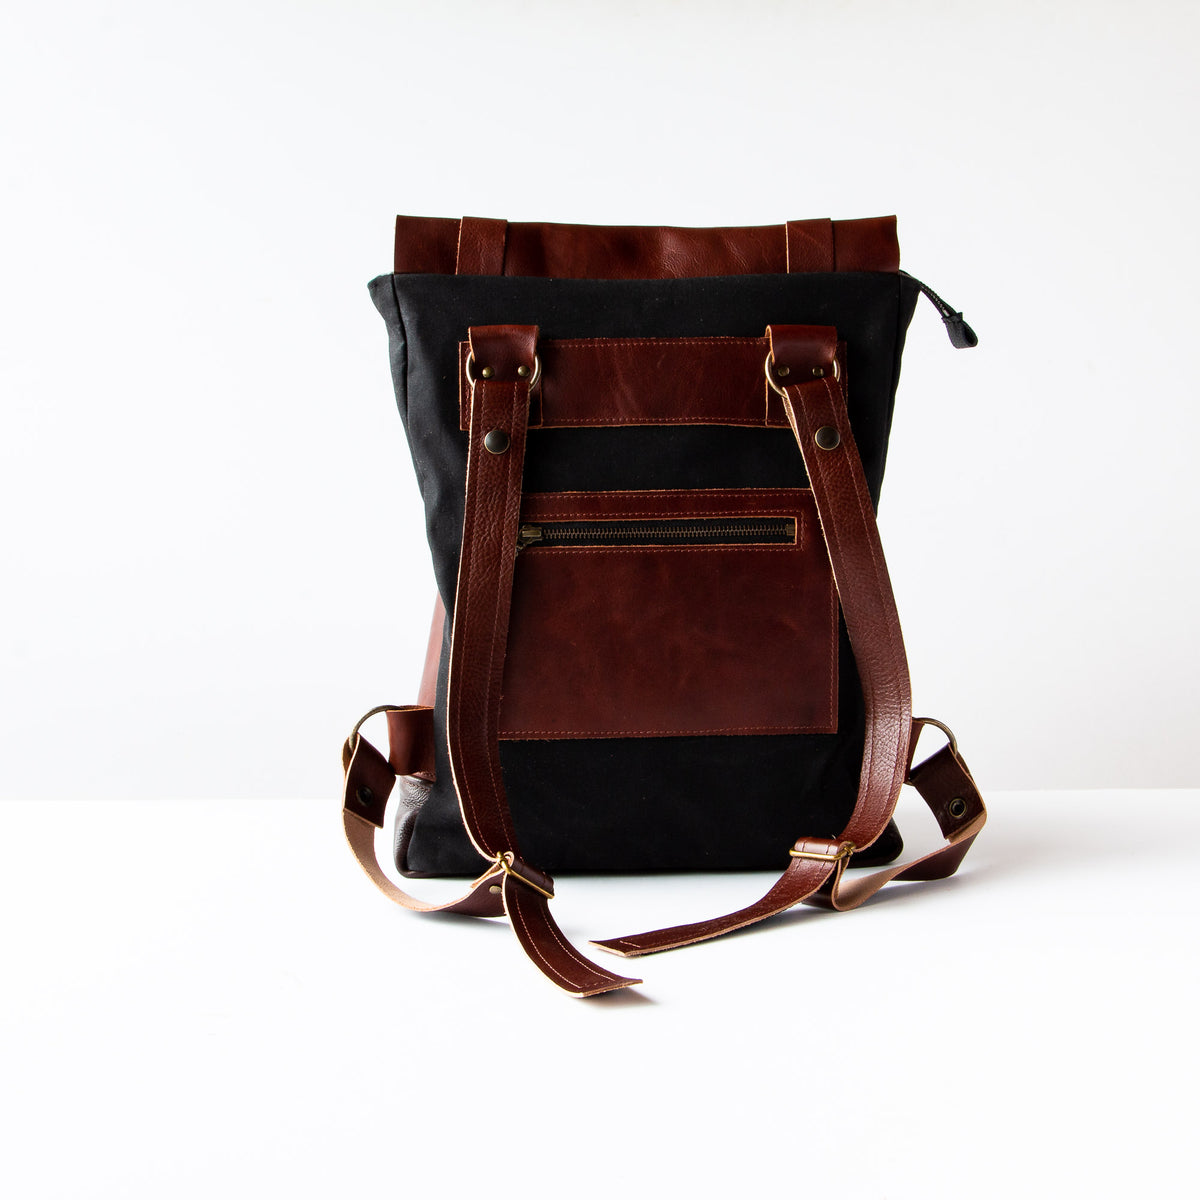 Back View - Andes - Brown Leather Handmade 15 Inch Laptop Backpack - Leather & Waxed Cotton - Sold by Chic & Basta